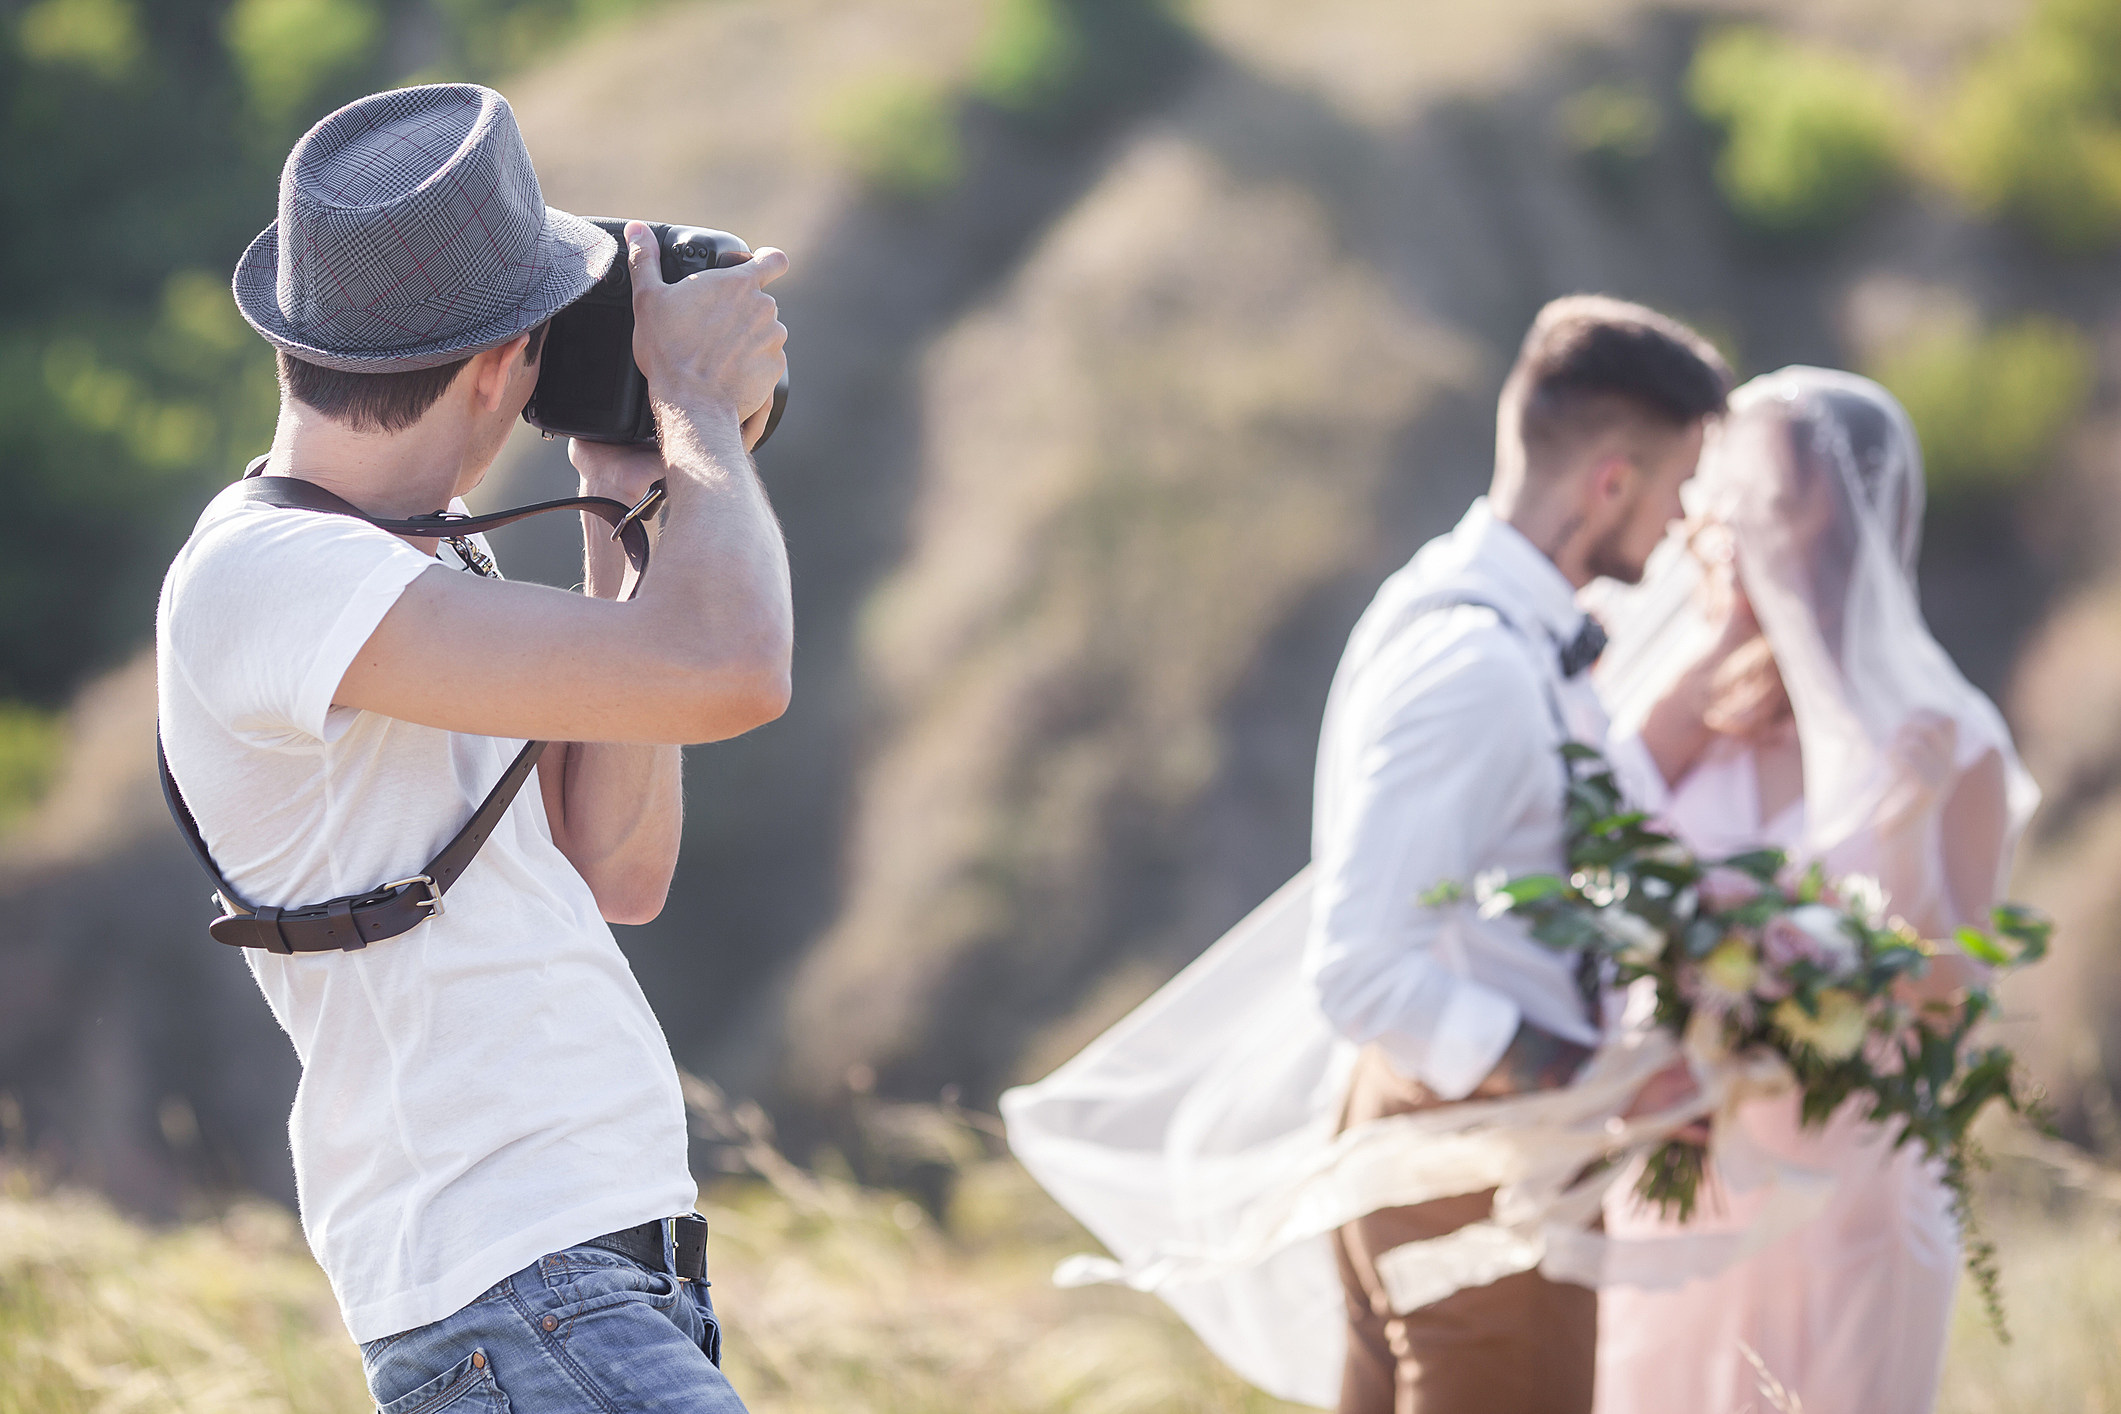 pictures Wedding photographer shoved brides step mom to get perfect picture